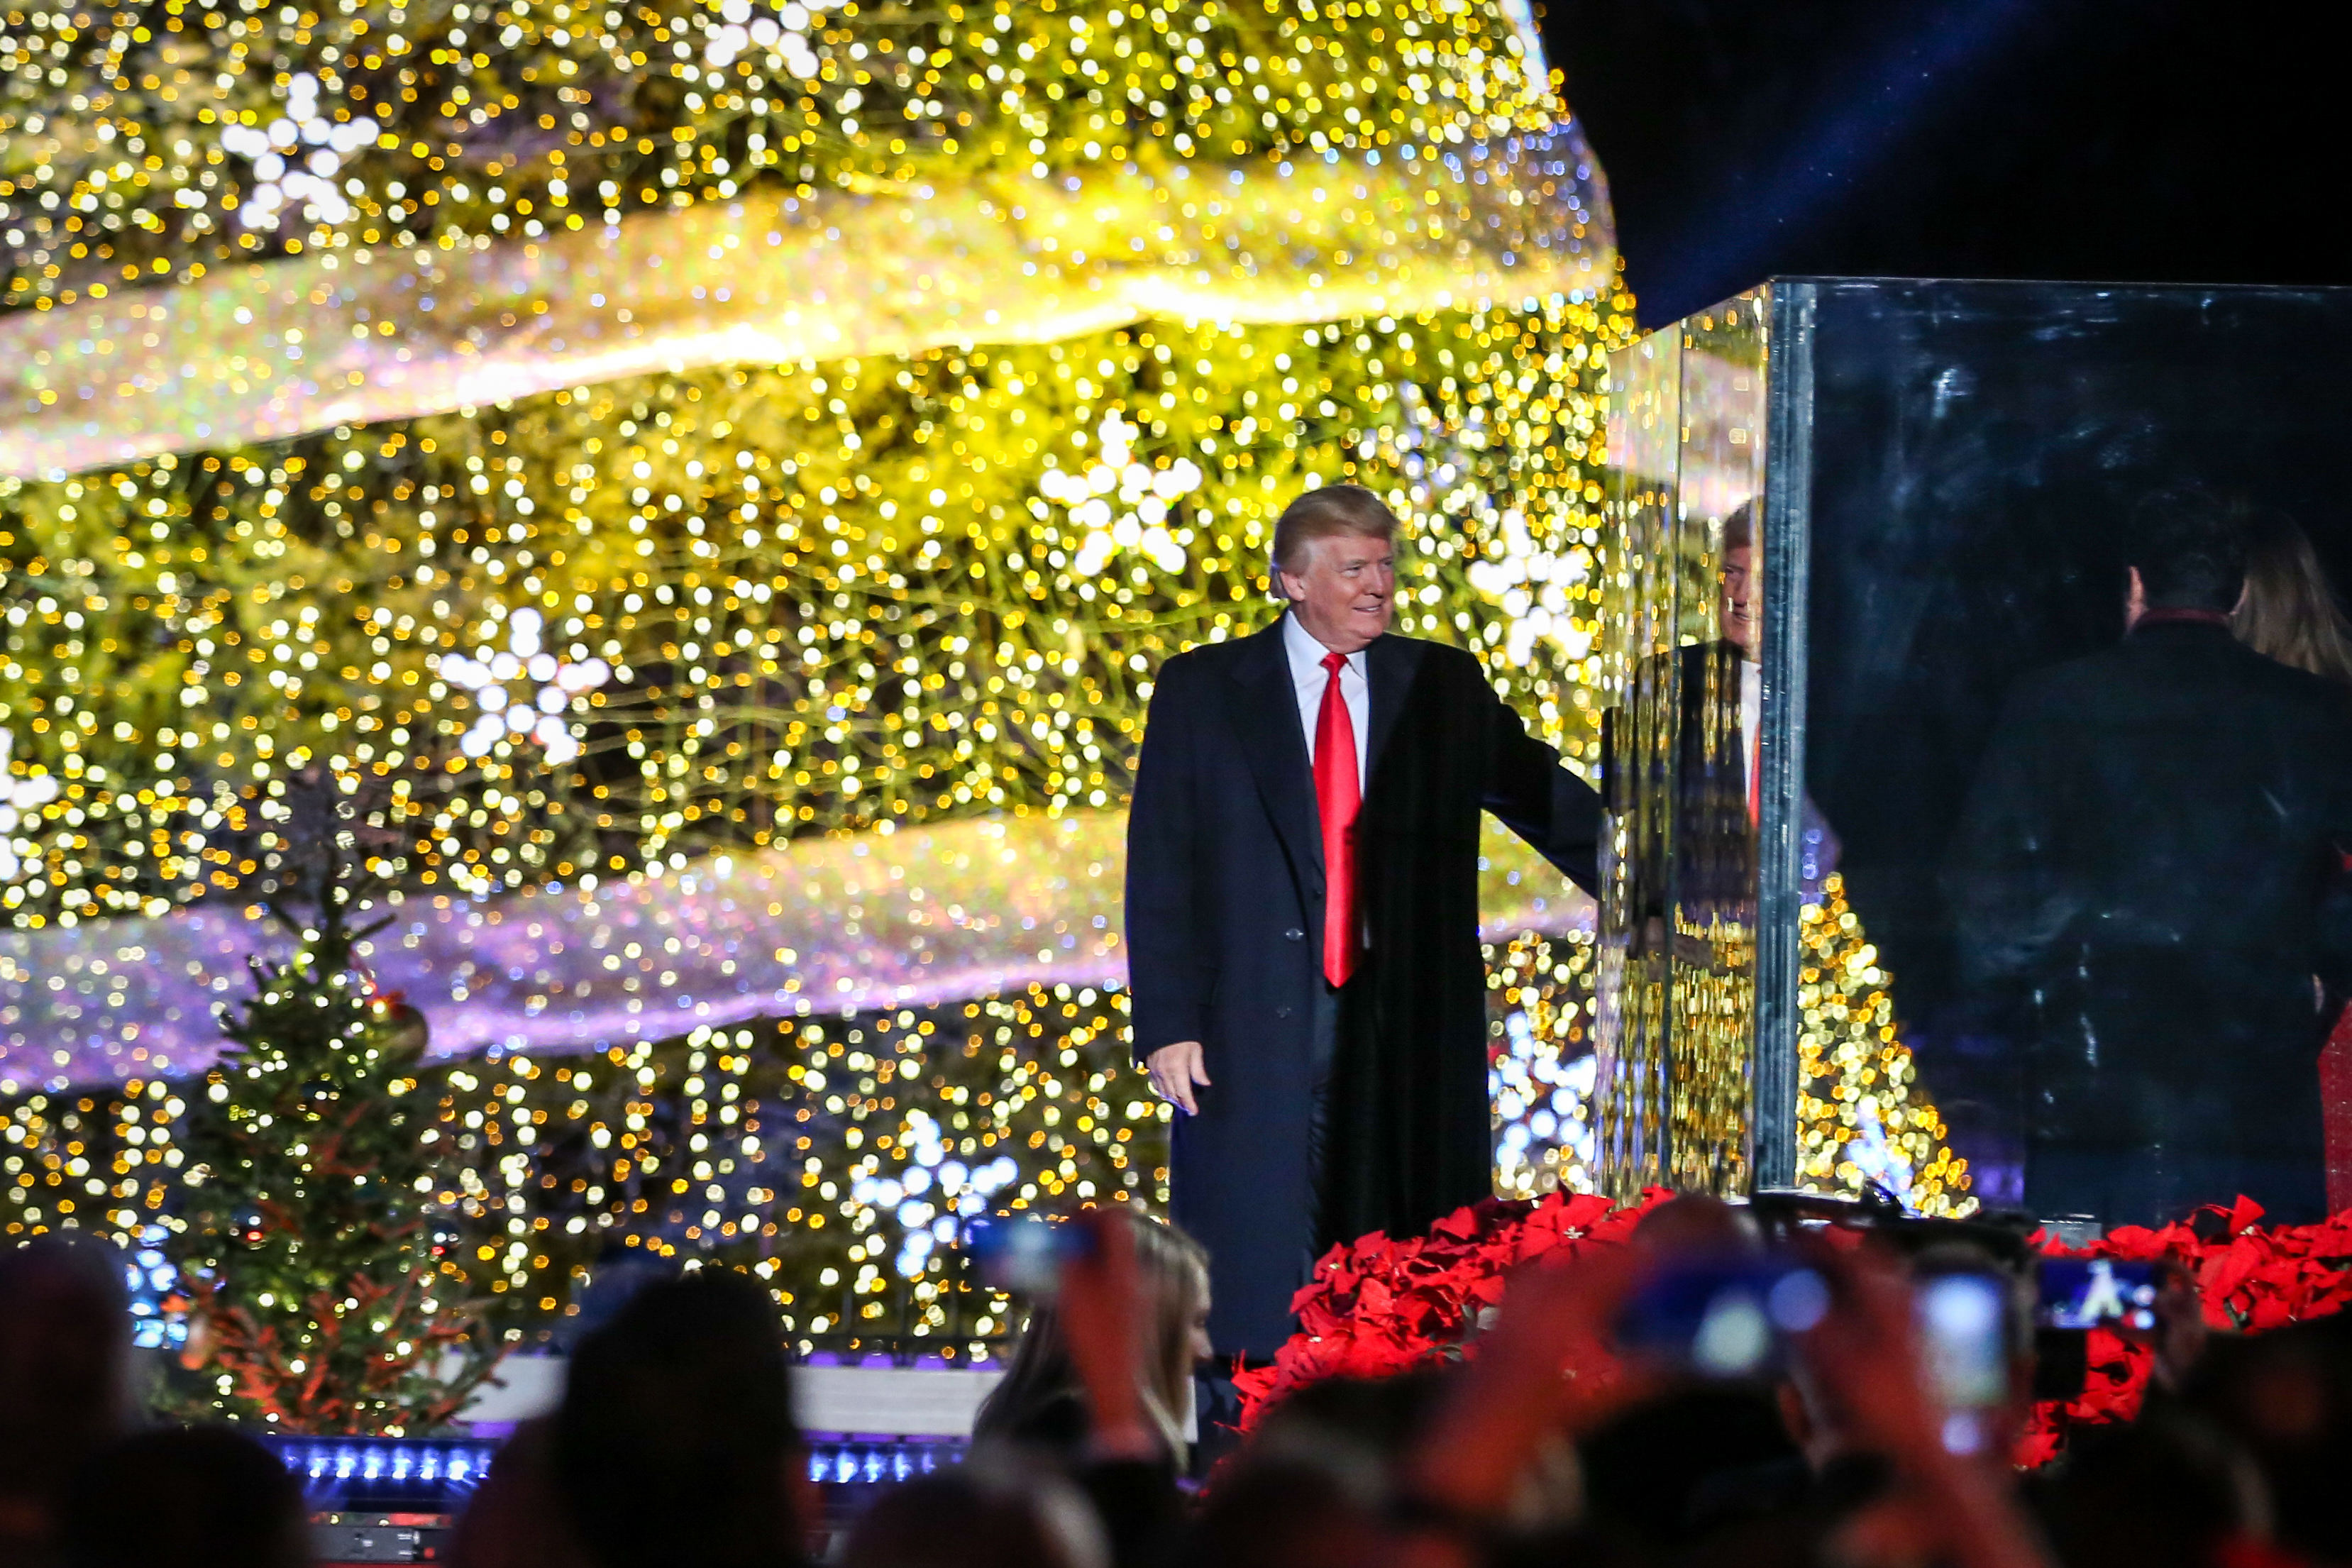 President Trump and First Lady Melania illuminated the 95th National Christmas Tree in front of the White House on Nov. 30. On the campaign trail, President Trump had criticized the use of 'happy holidays' instead of 'merry Christmas', and his remarks last night focused on the religious origins of the holiday. The lineup was perhaps slightly less A-list than Obama's tree lighting ceremony last year, but nevertheless President Trump could be seen swaying to the tunes of the Beach Boys, Jack Wagner and  Wynonna Judd. The special will air on Monday on the Hallmark Channel. (Amanda Andrade-Rhoades/DC Refined)